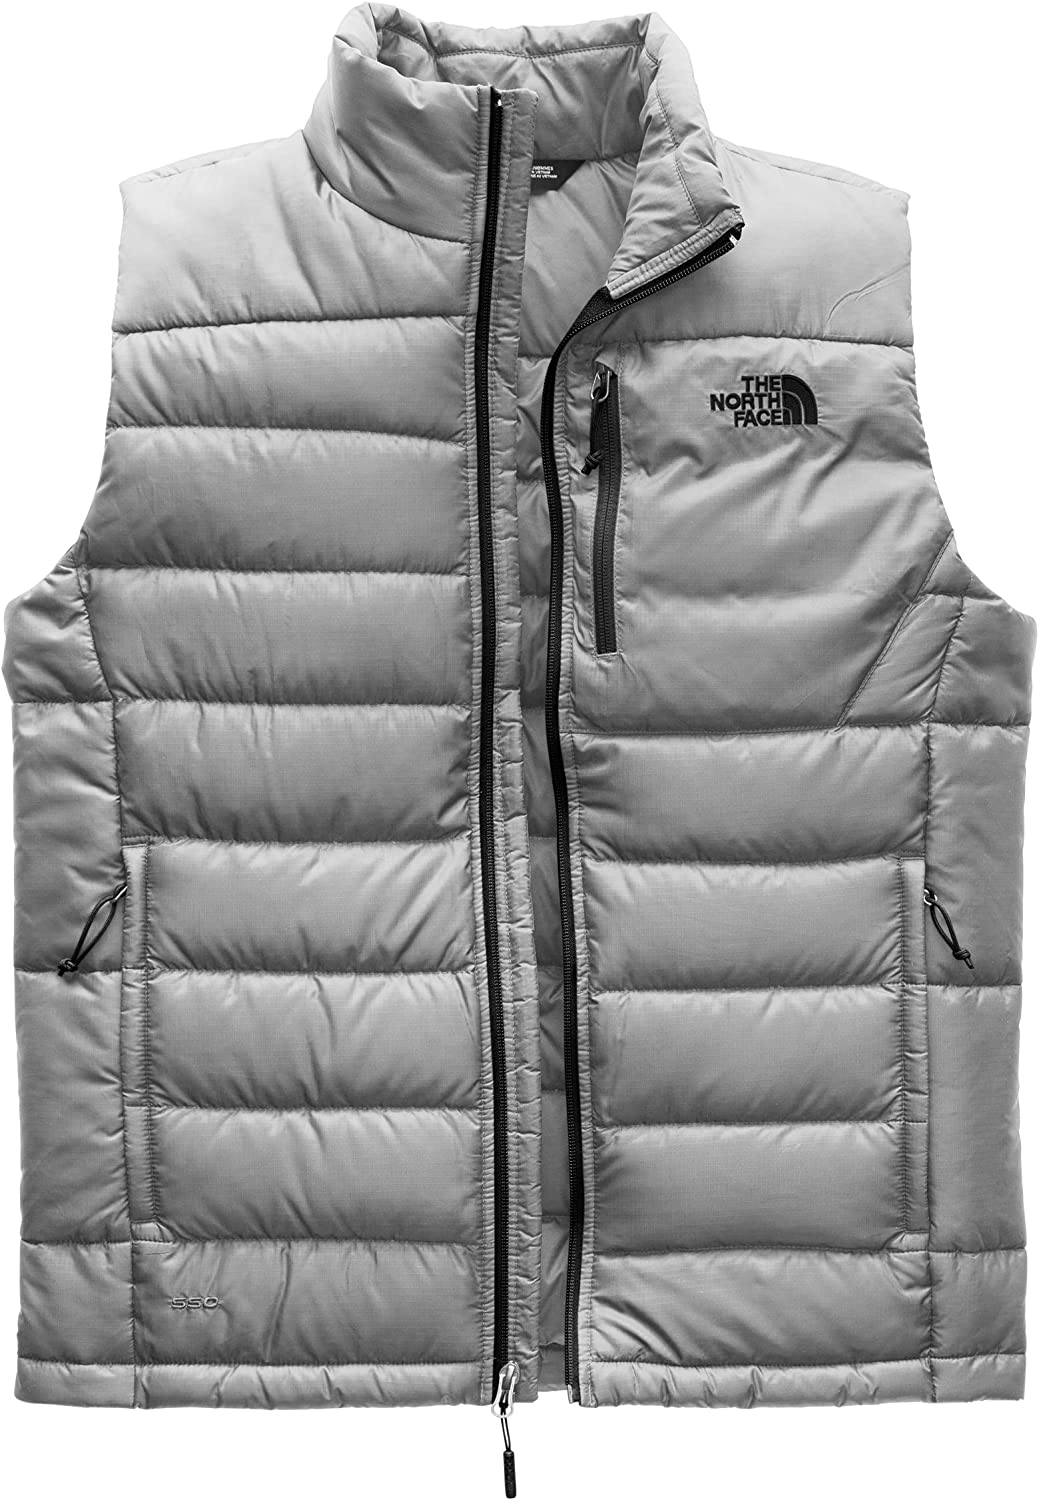 The north face novelty aconcagua vest forex trading profitable or not